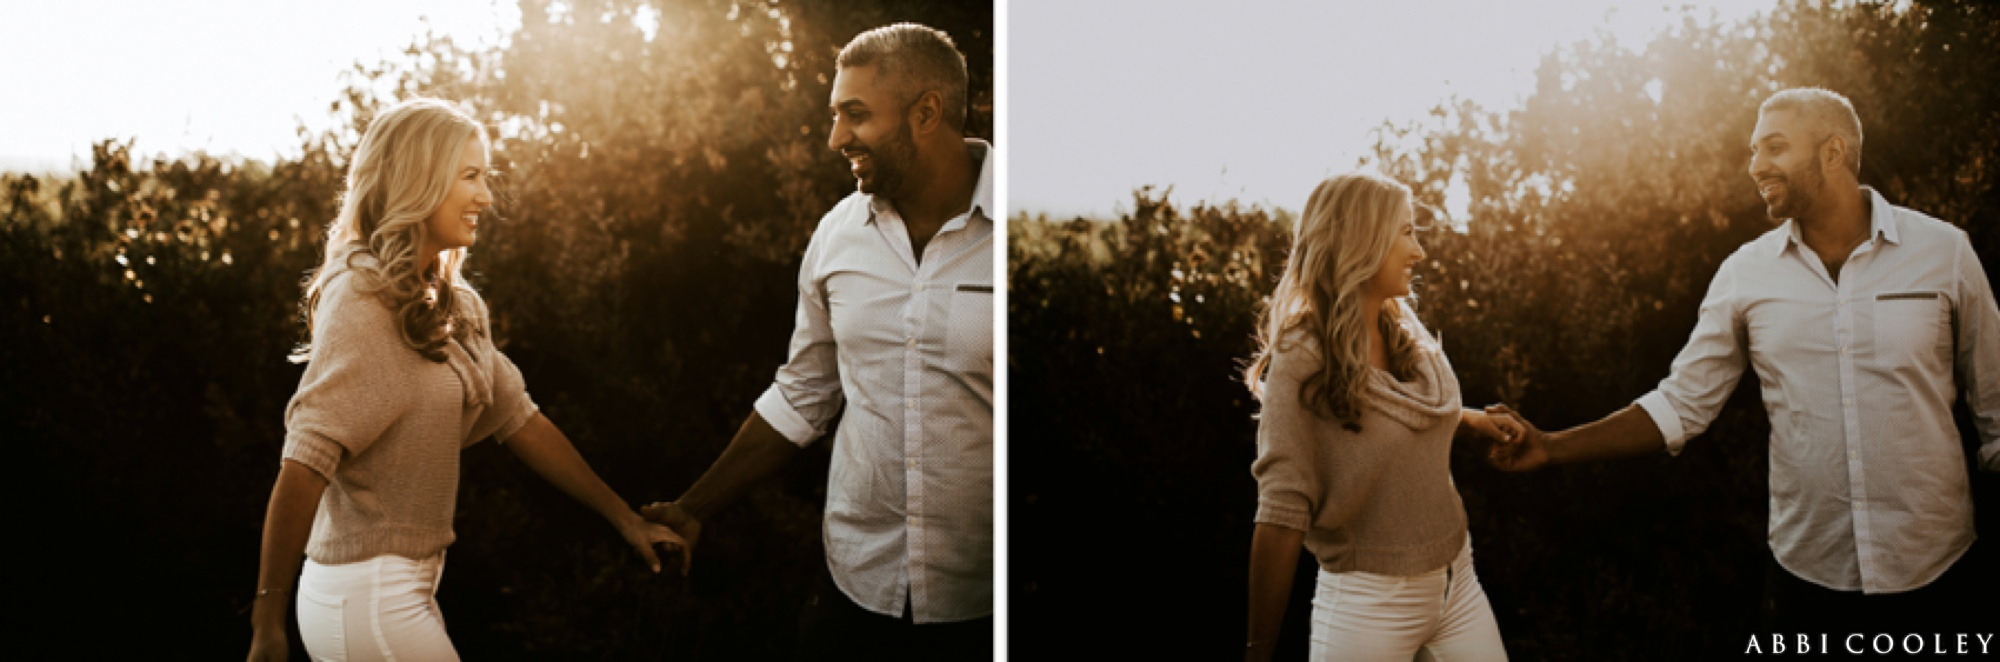 ABBI COOLEY NEWPORT BEACH ENGAGEMENT_0993